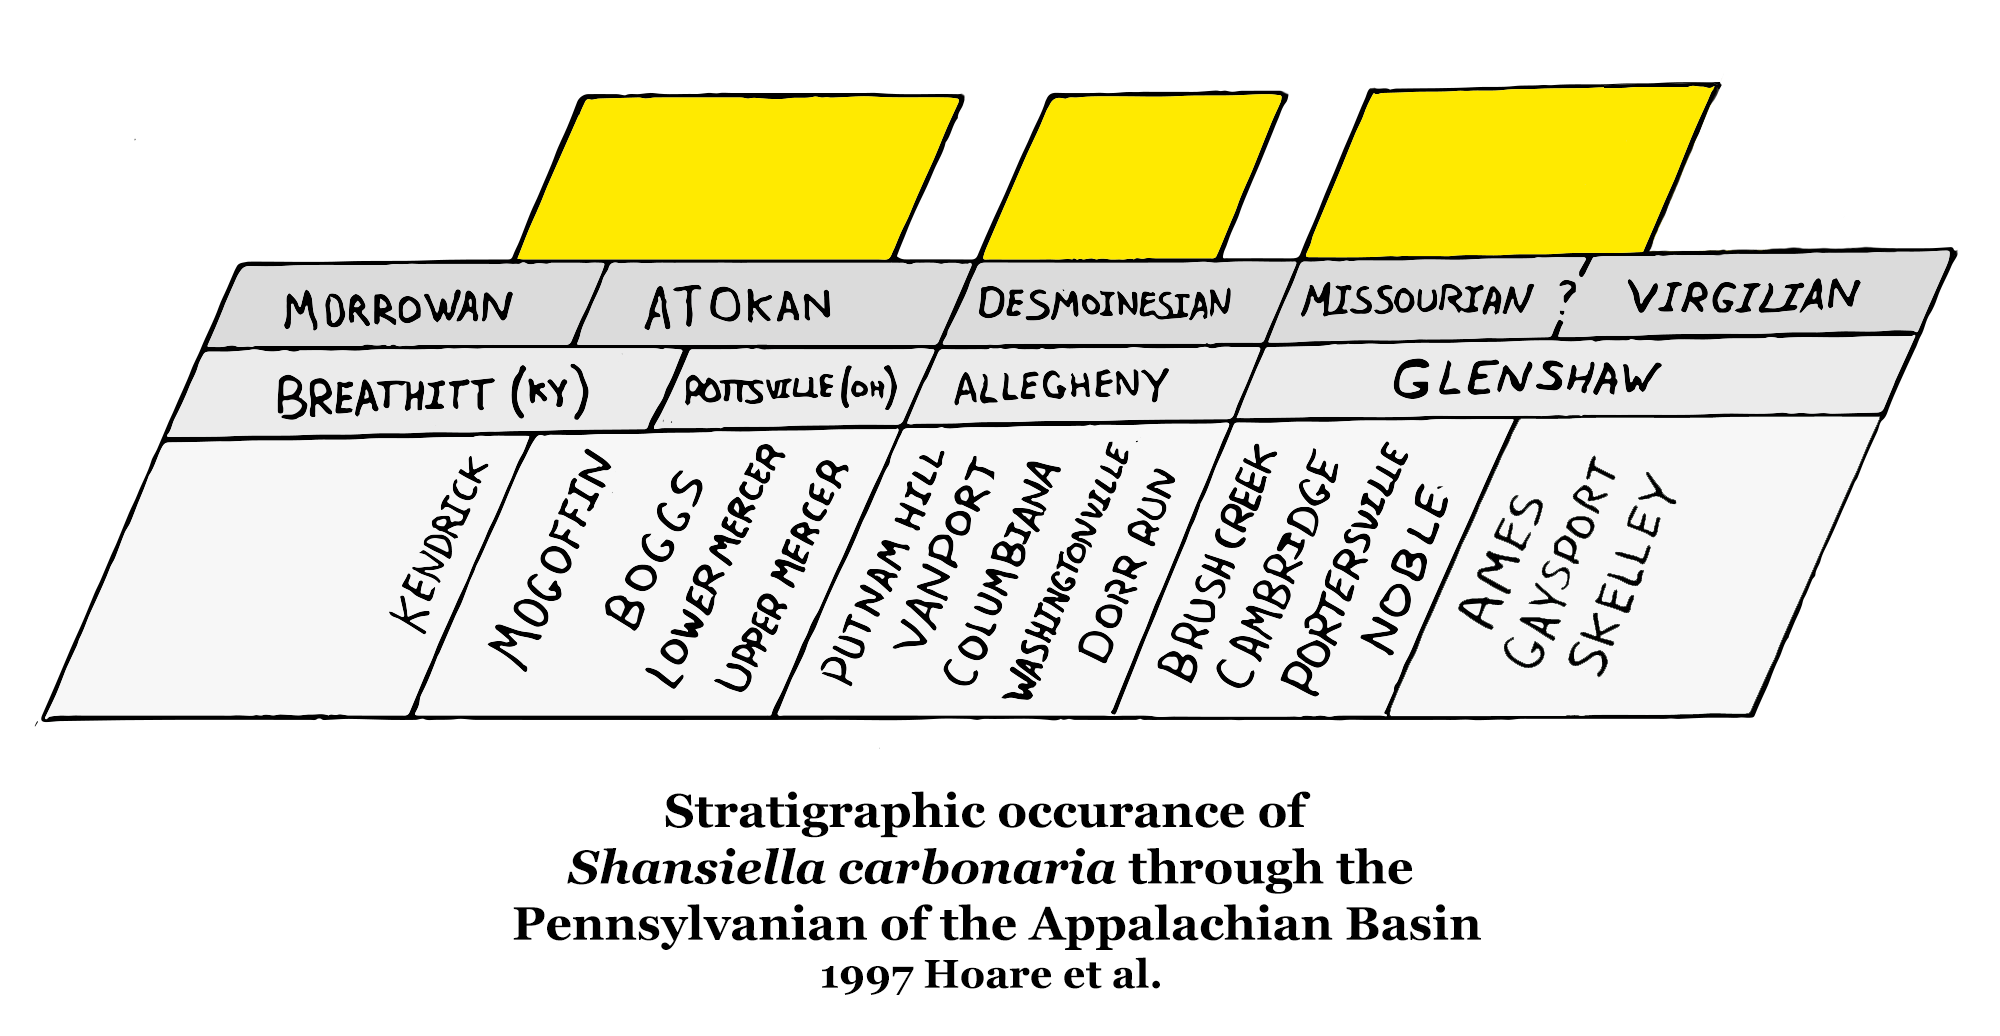 Stratigraphic occurance of S. carbonaria through the Pennsylvanian of the Appalachian Basin - 1997 Hoare et al.